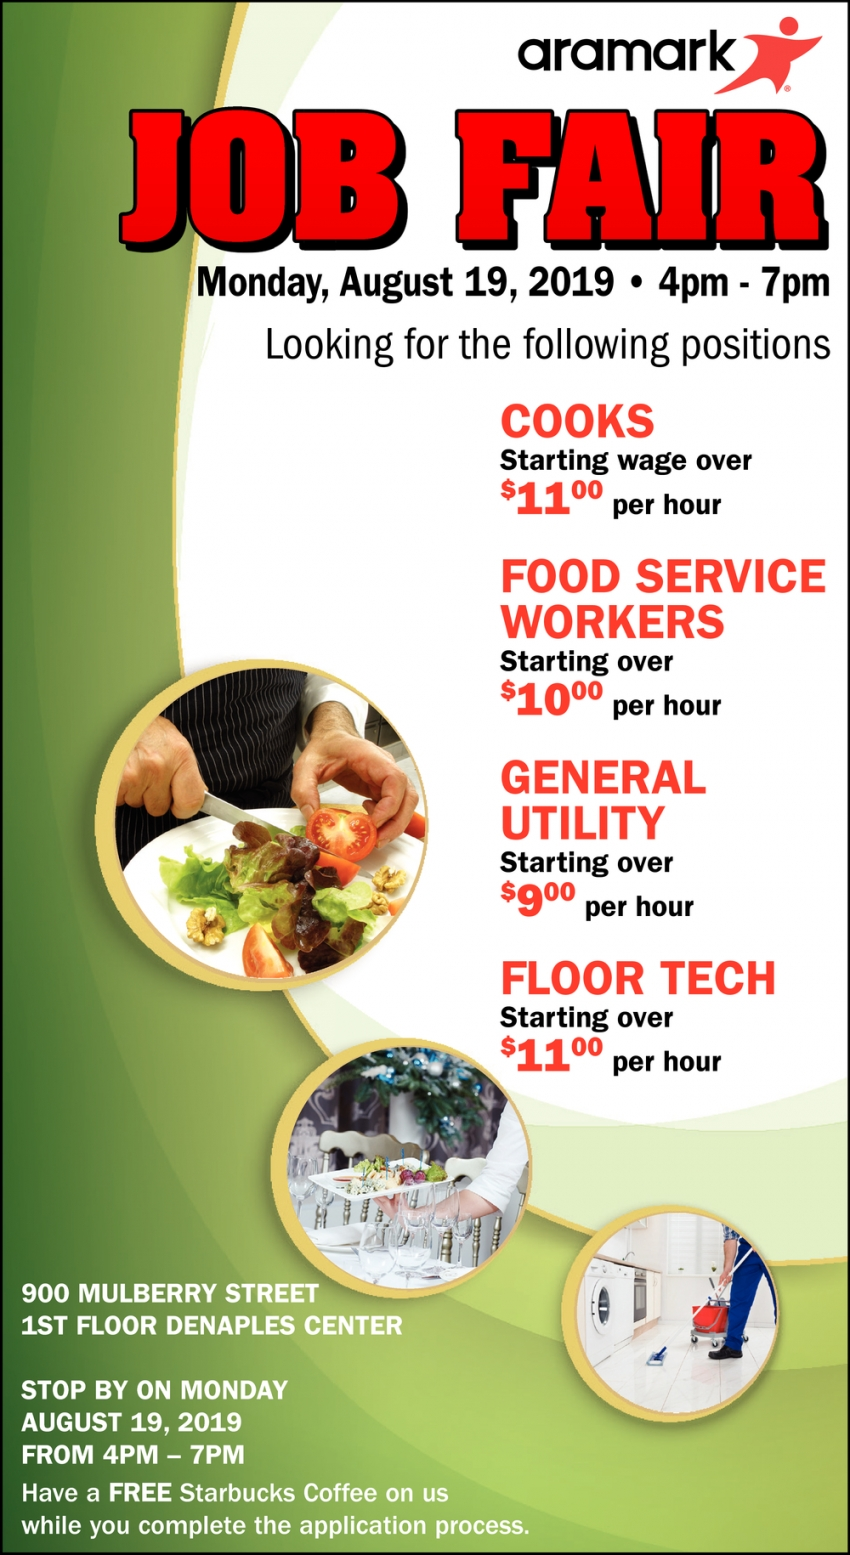 Cooks, Food Service Workers, General Utility, Floor Tech